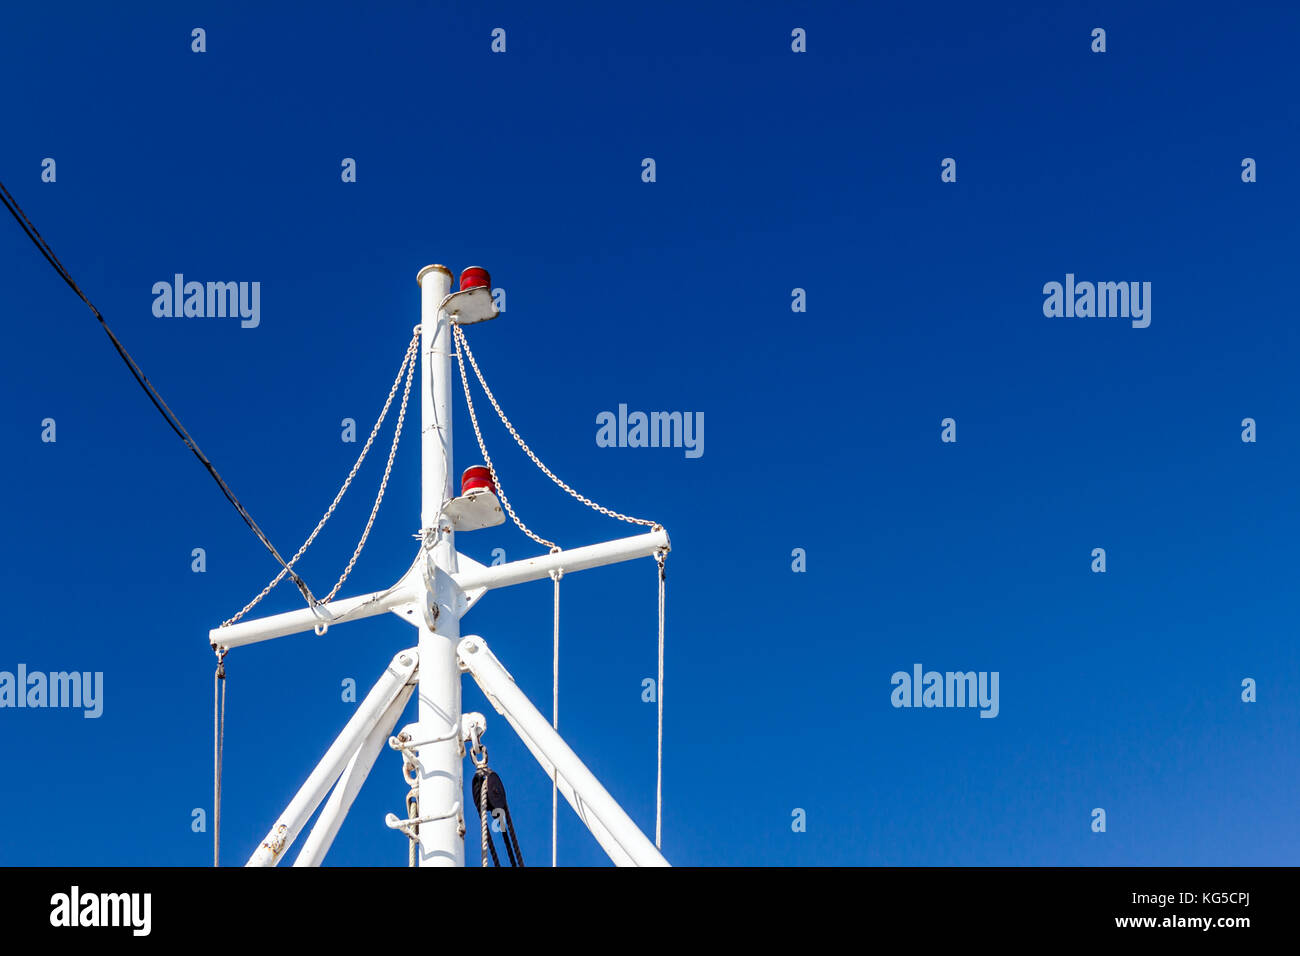 Tall white mast on sunny day with signalization lights. - Stock Image